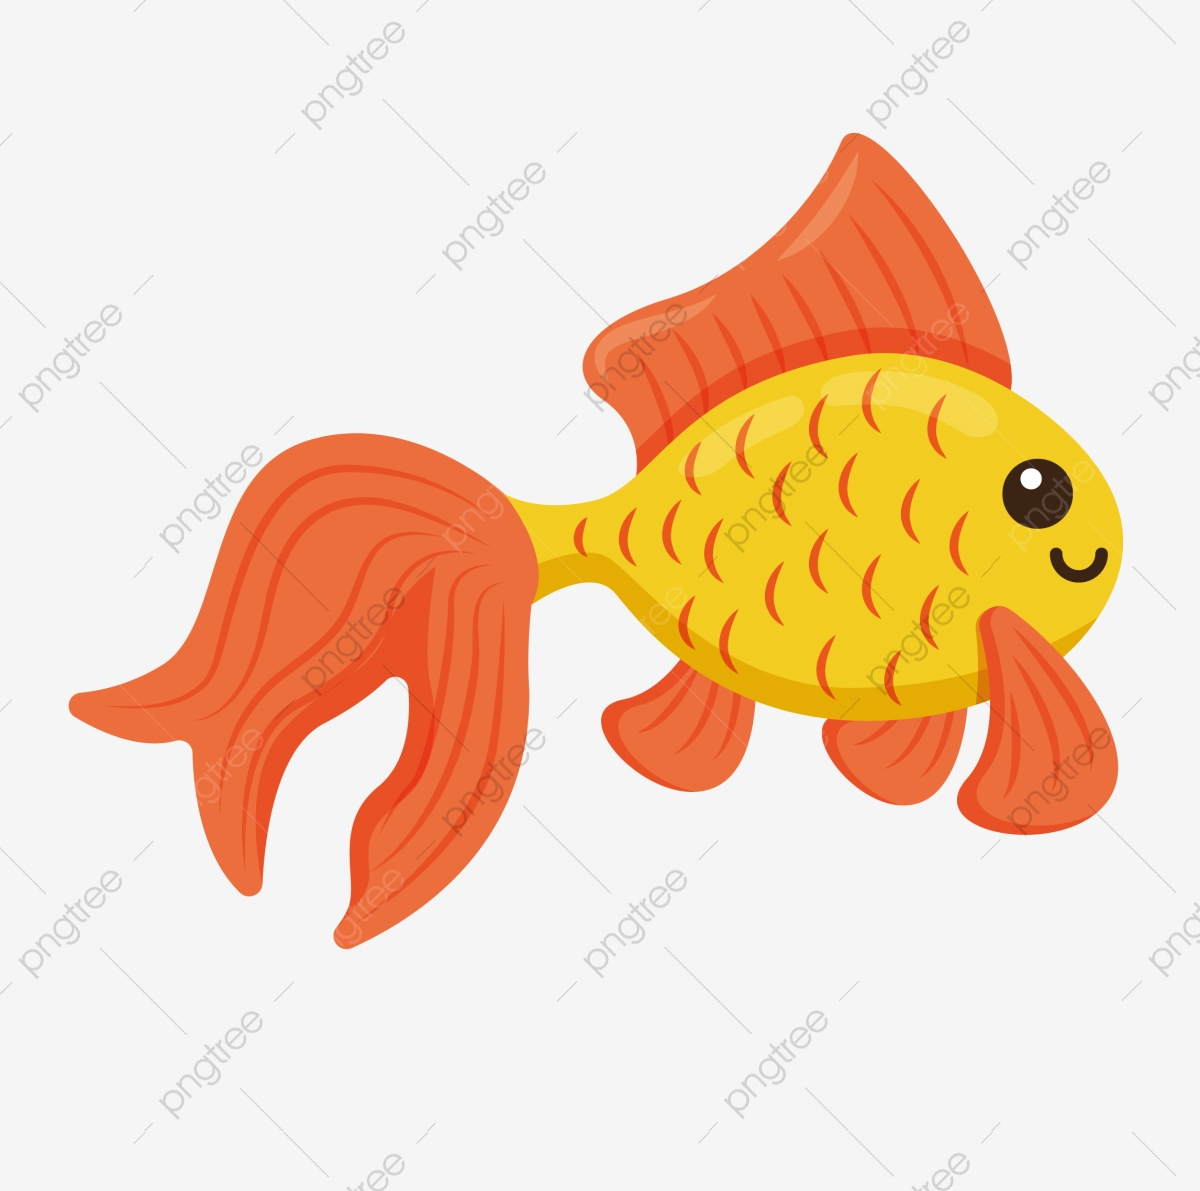 Goldfish Ornamental Fish Through Cartoon Fish Lovely Cute Fish Cartoon Png And Vector With Transparent Background For Free Download